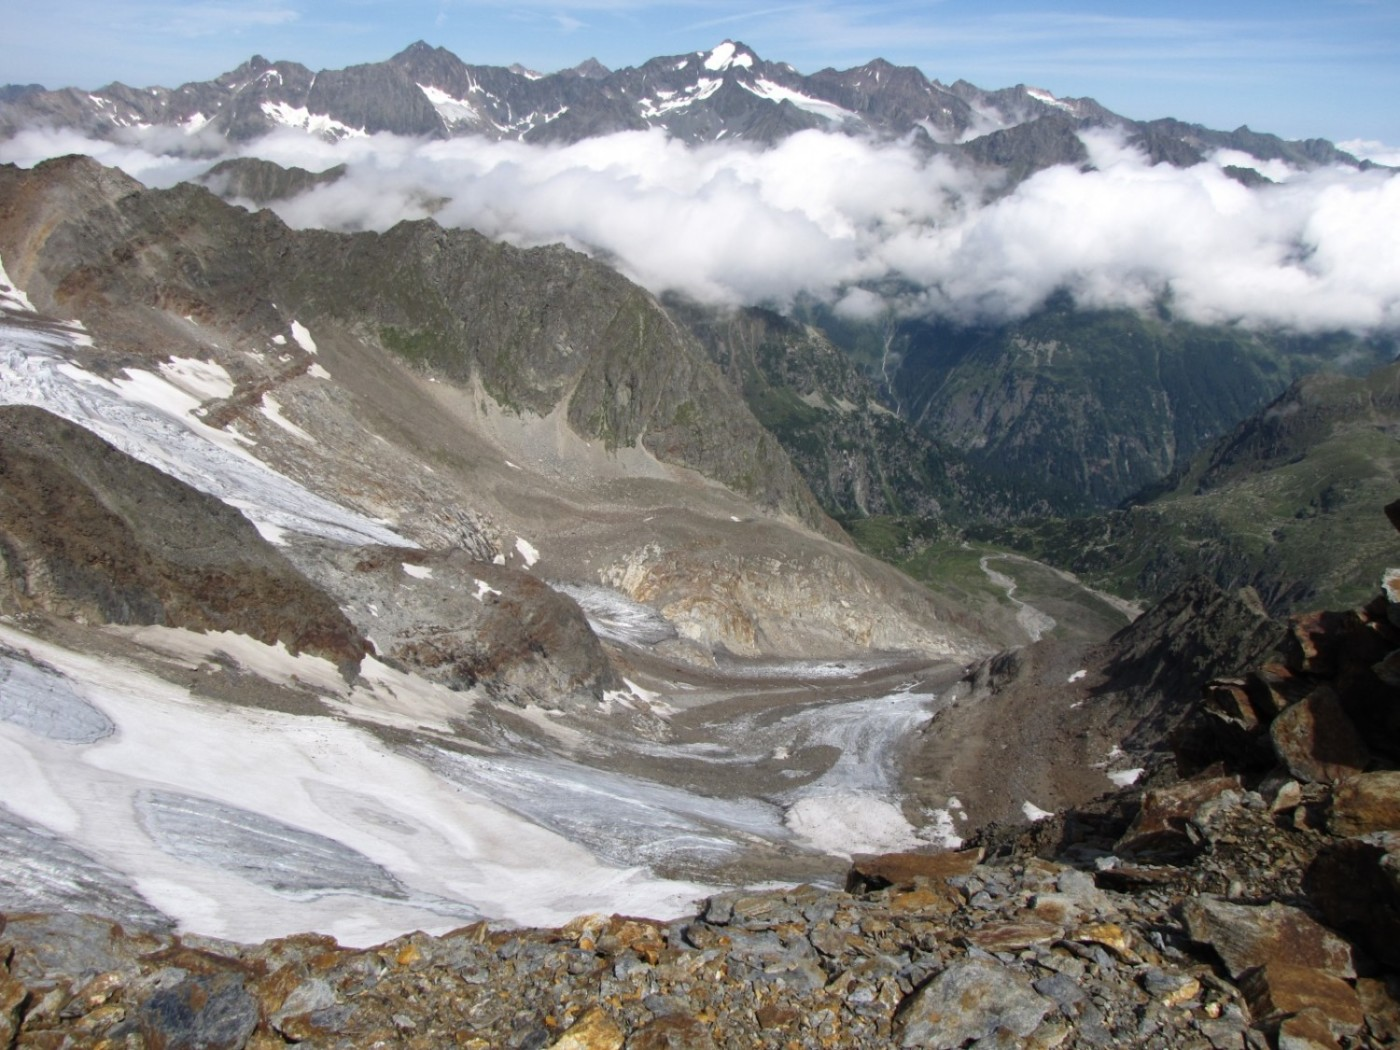 Looking down towards the Sulzenau Hut from the Gamspitzl